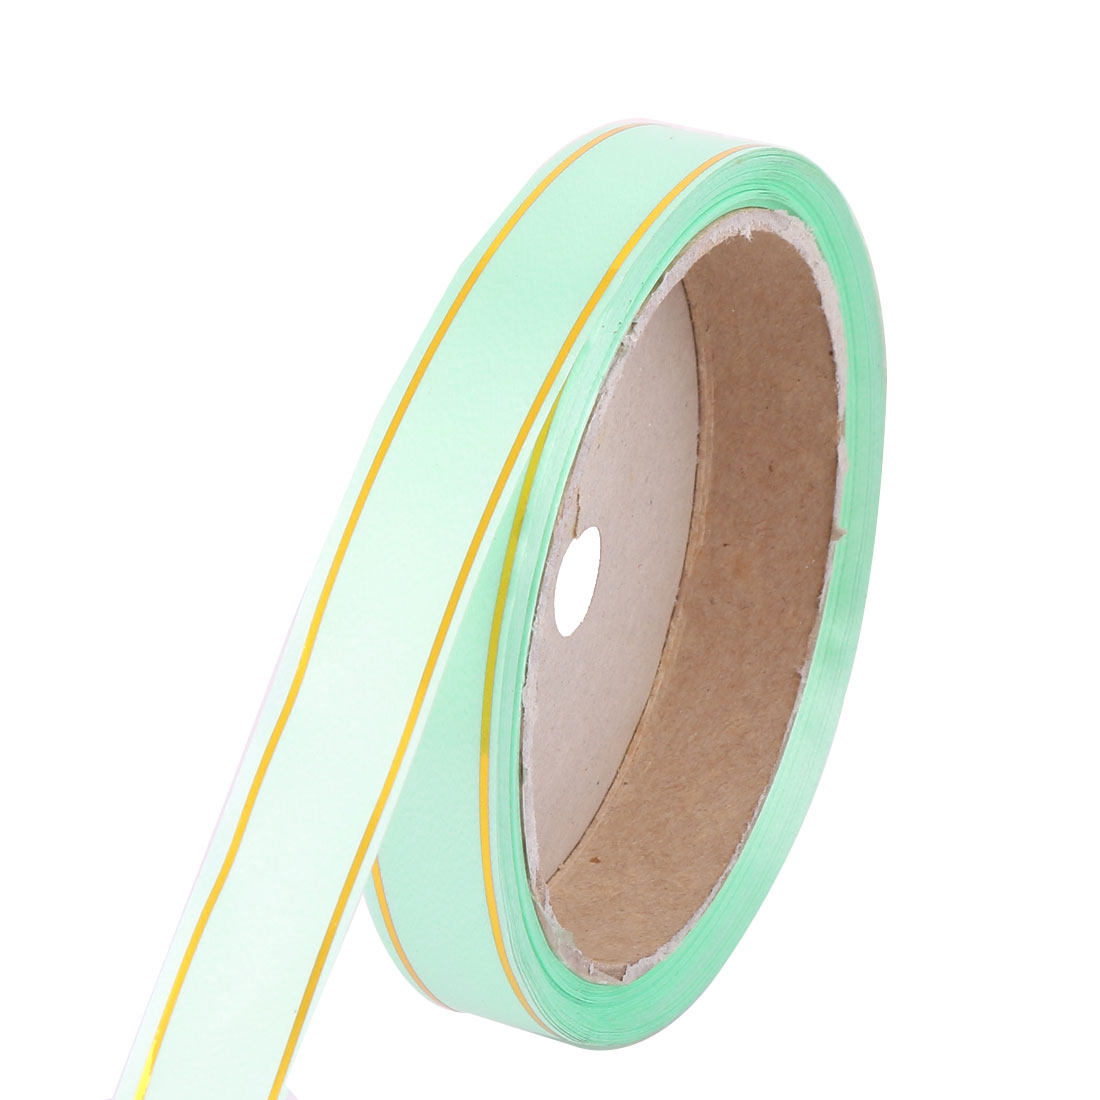 "DIY Gift Wrapping Light Green Ribbon Roll 1.1cm 0.4"" Width"